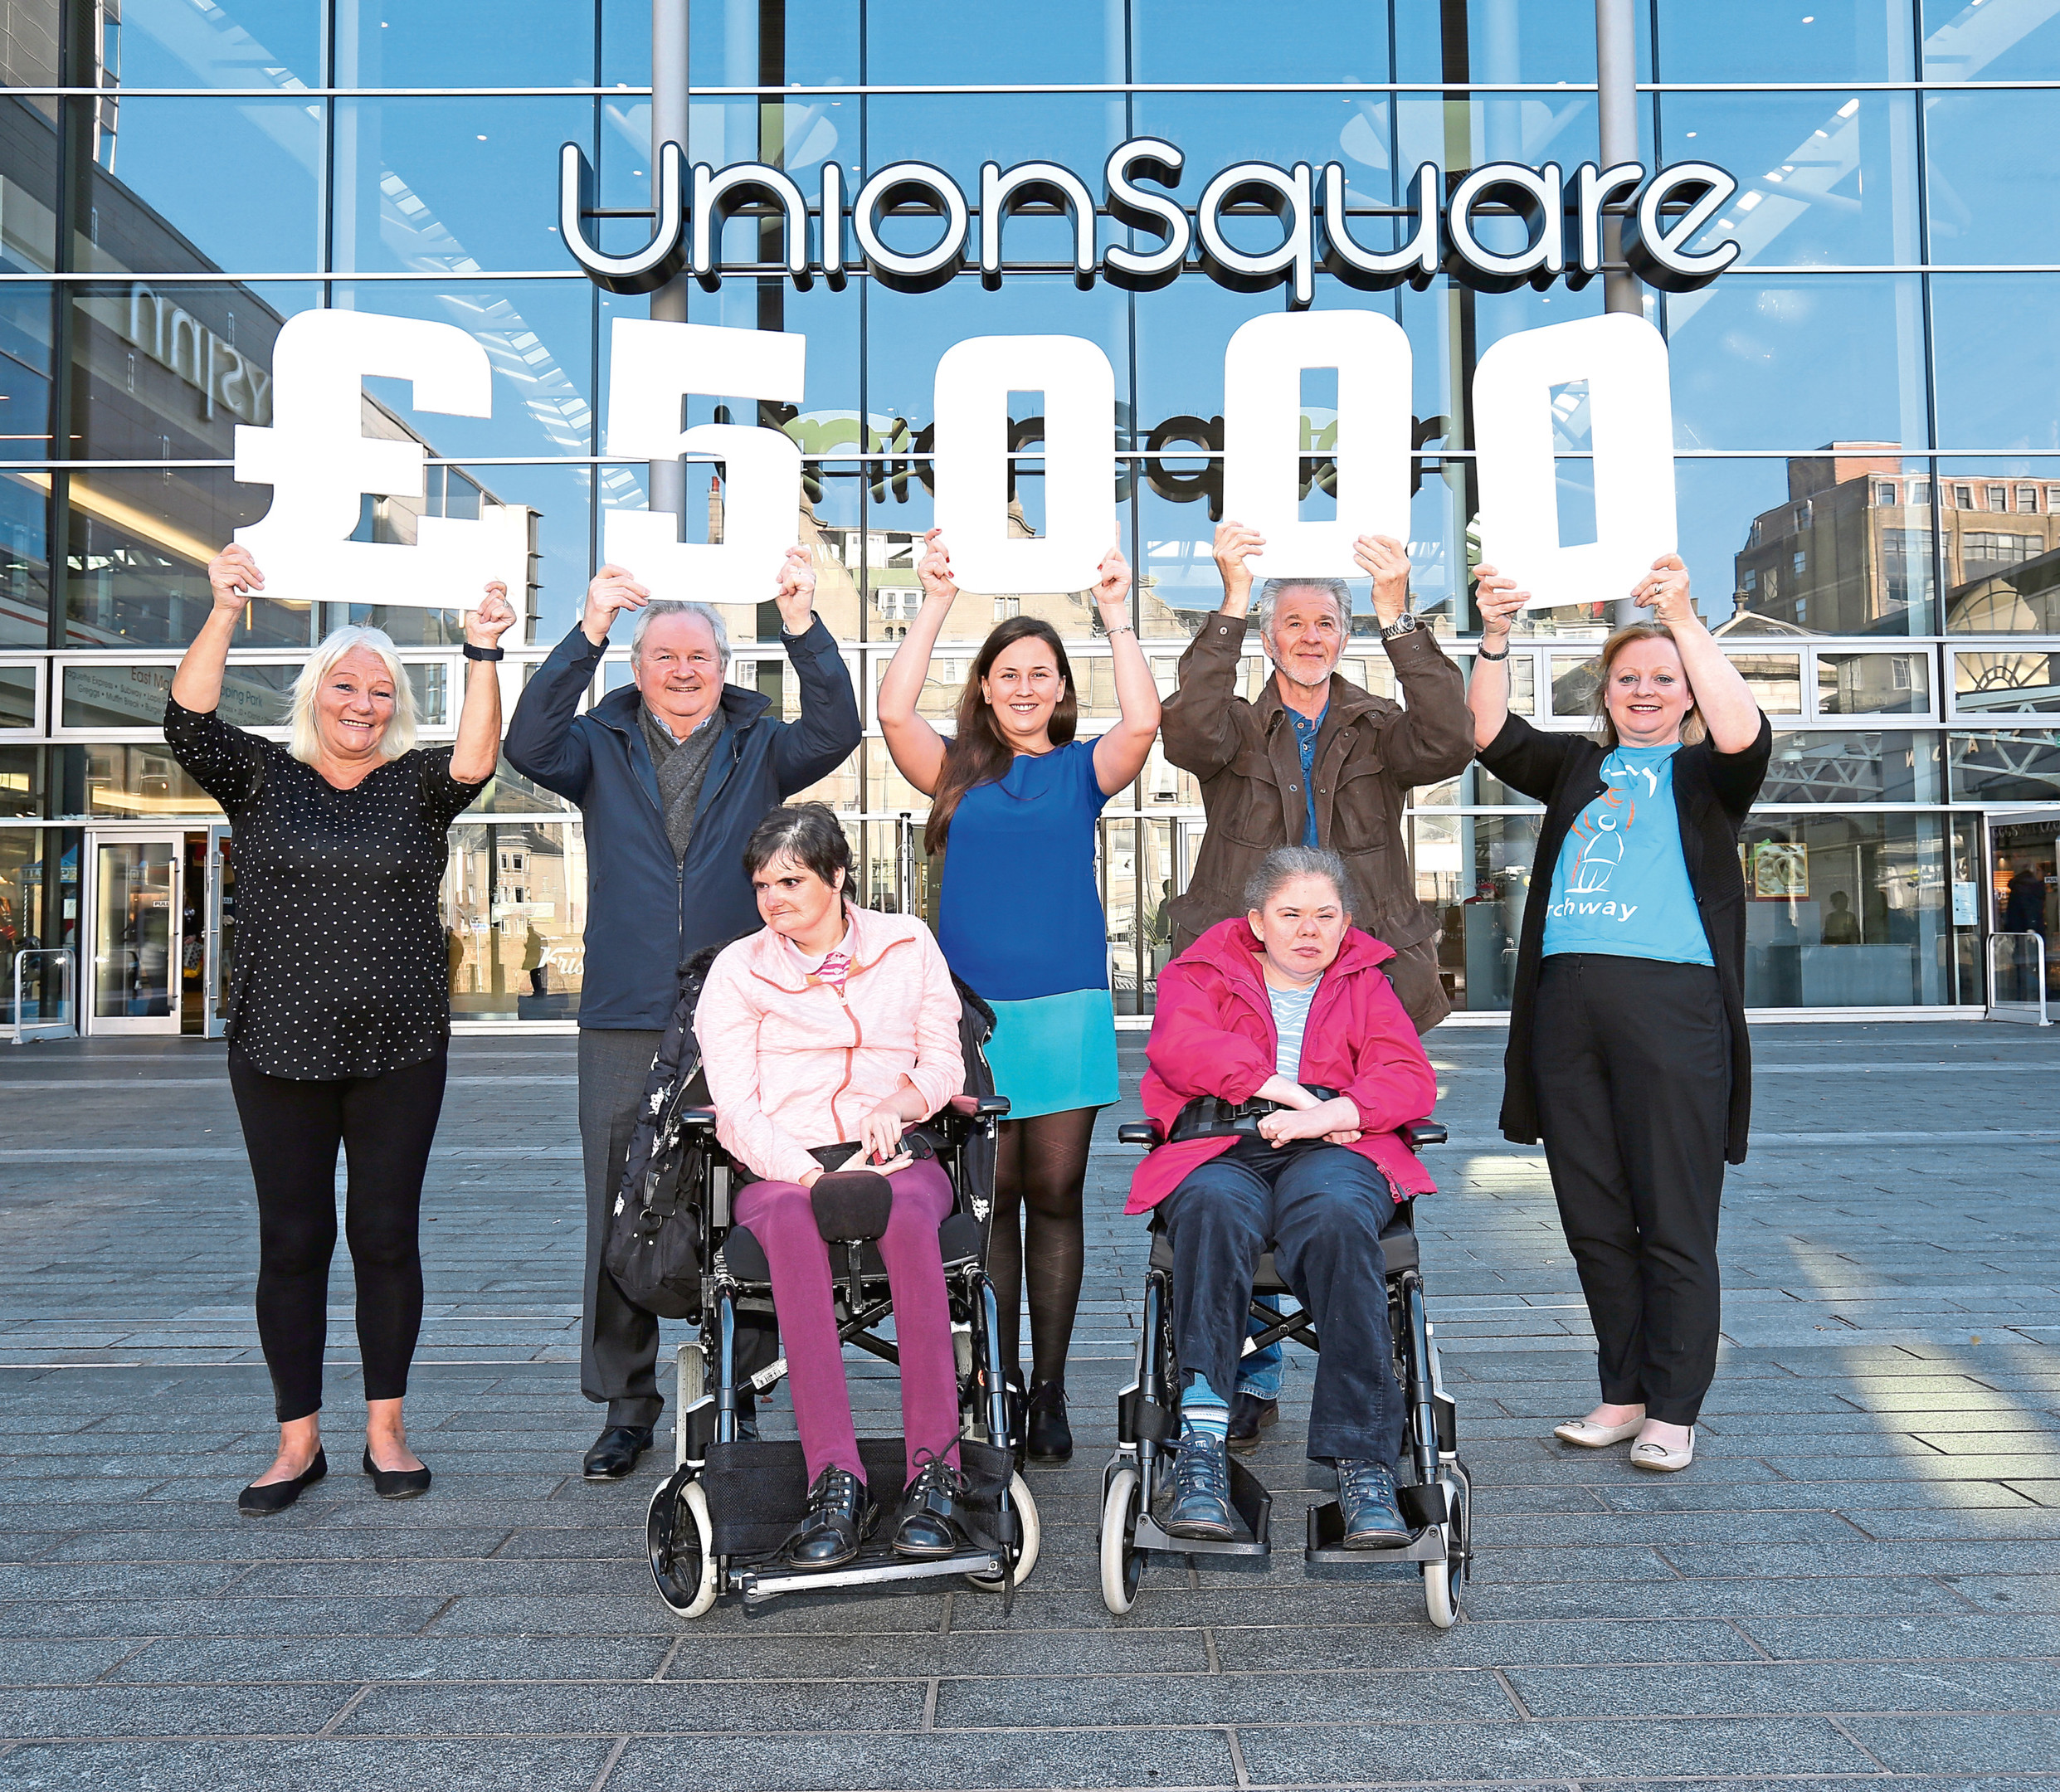 The shopping centre has donated the money to help the charity